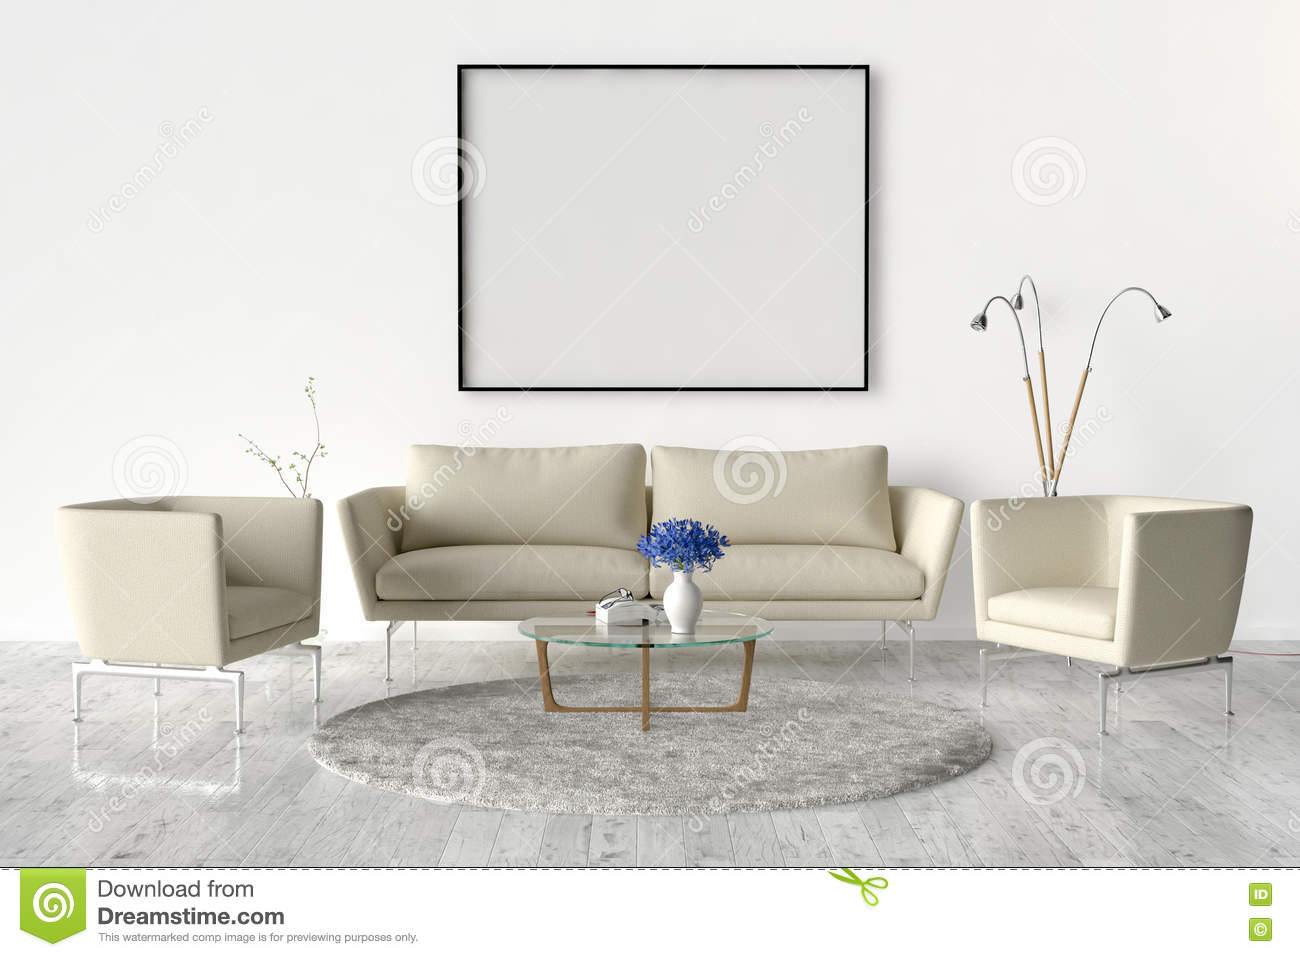 living room on the wall an empty picture frame stock illustration